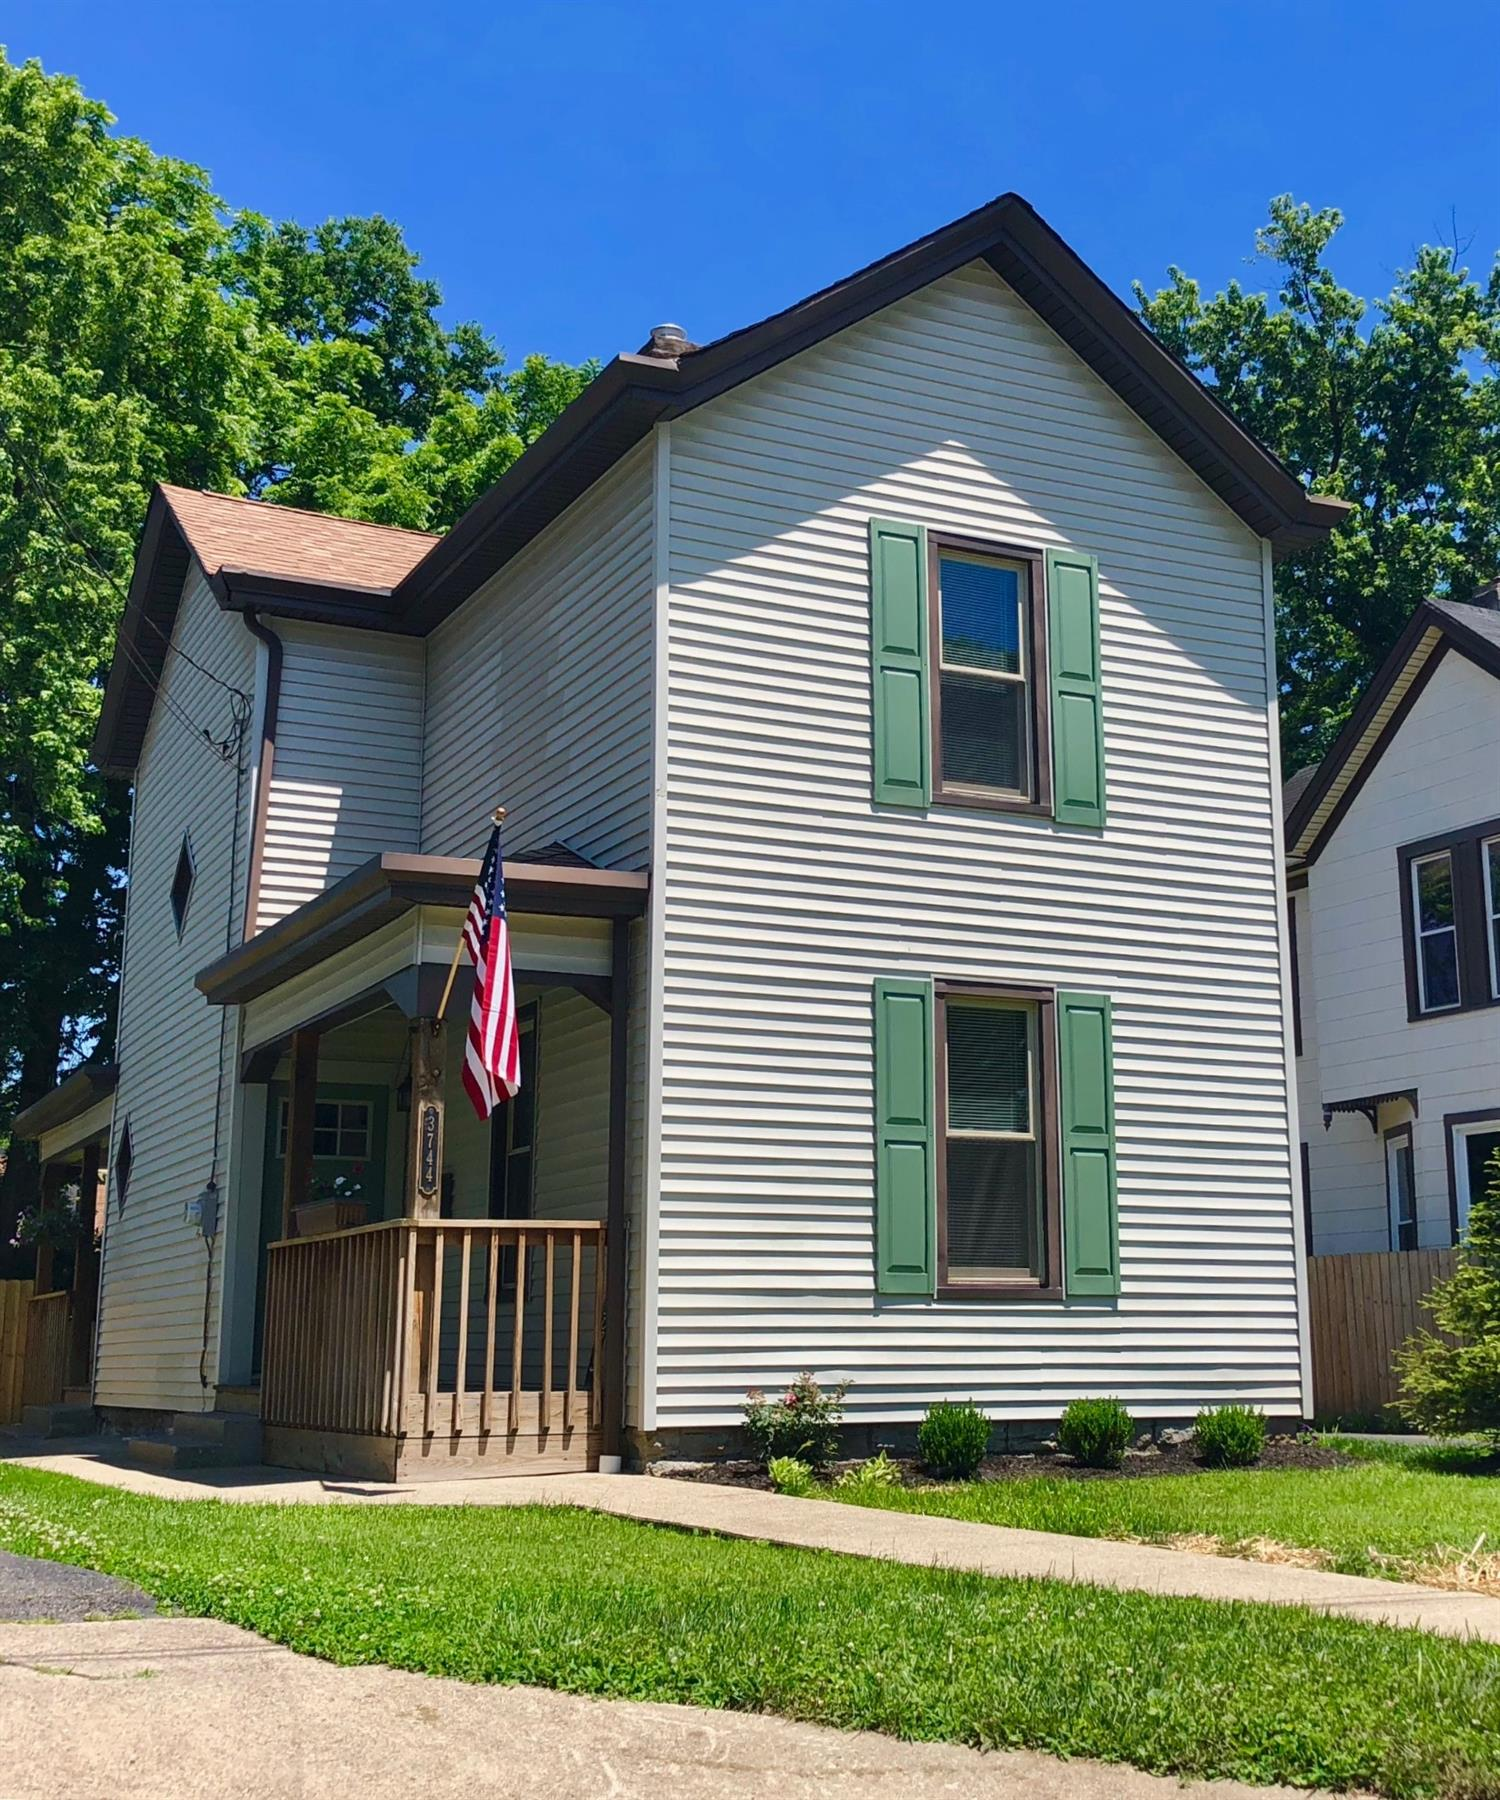 3744 Pennsylvania Ave Linwood Oh 45226 Listing Details